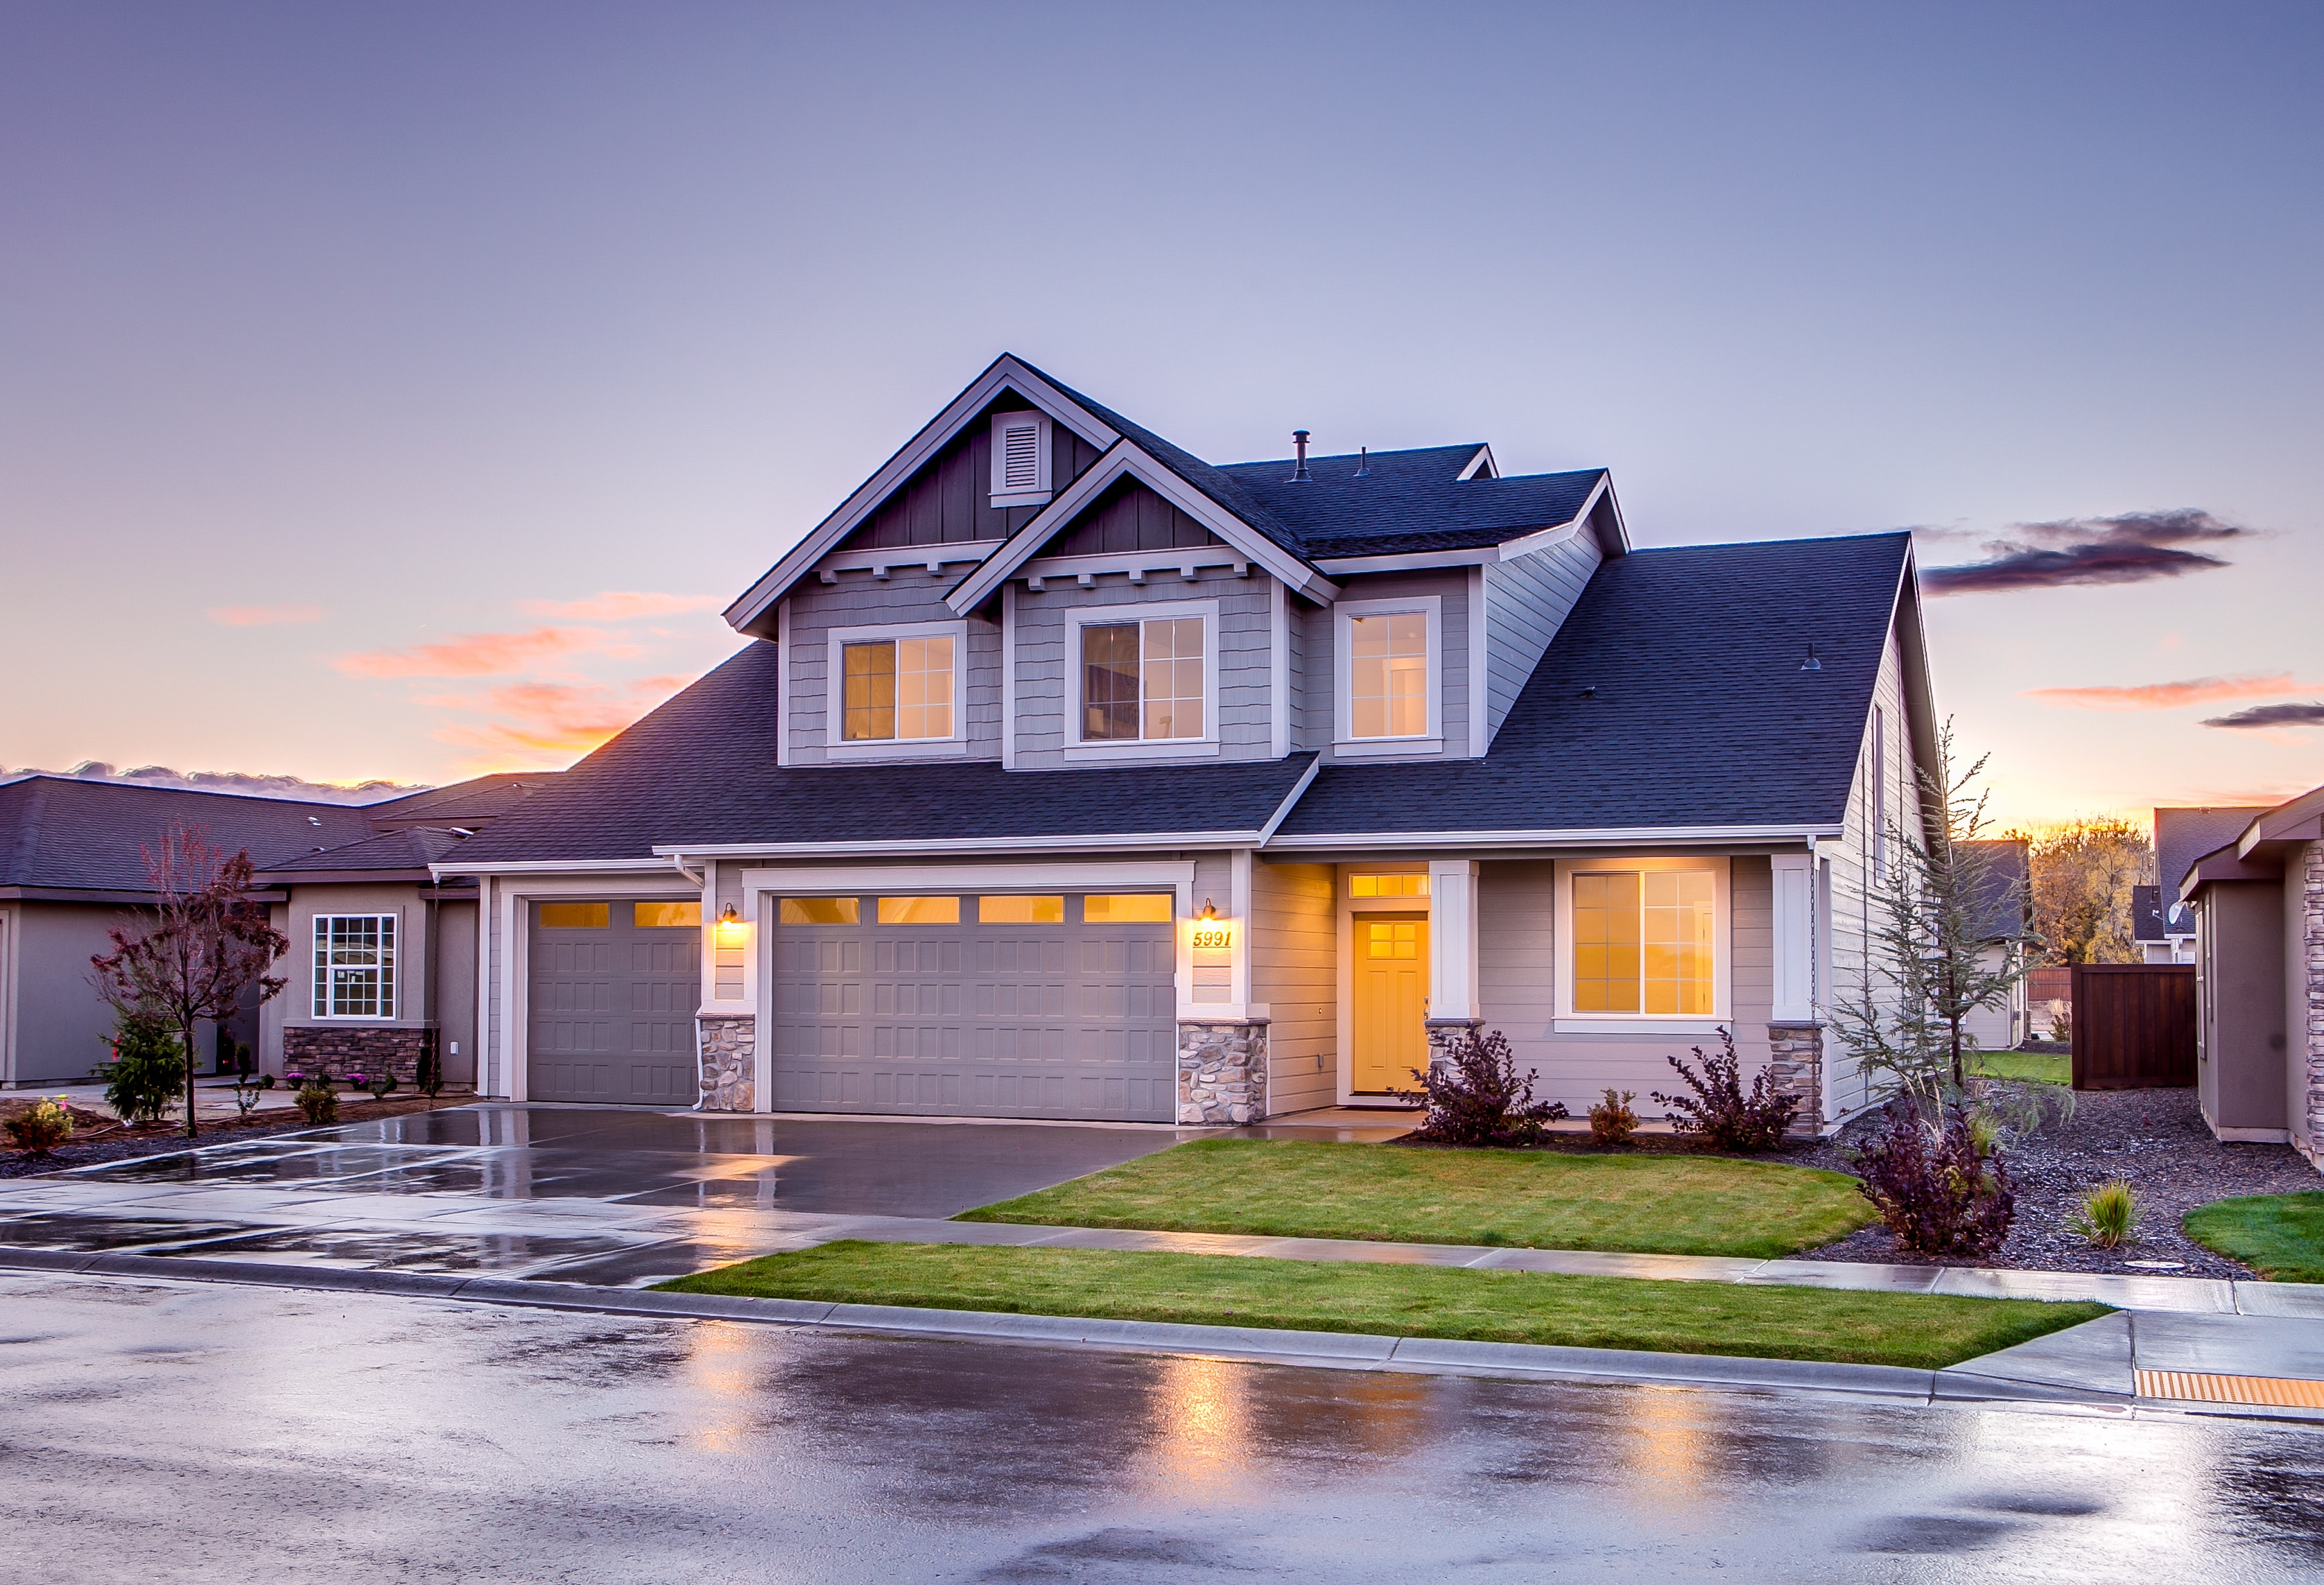 Primary Mortgage Insurance